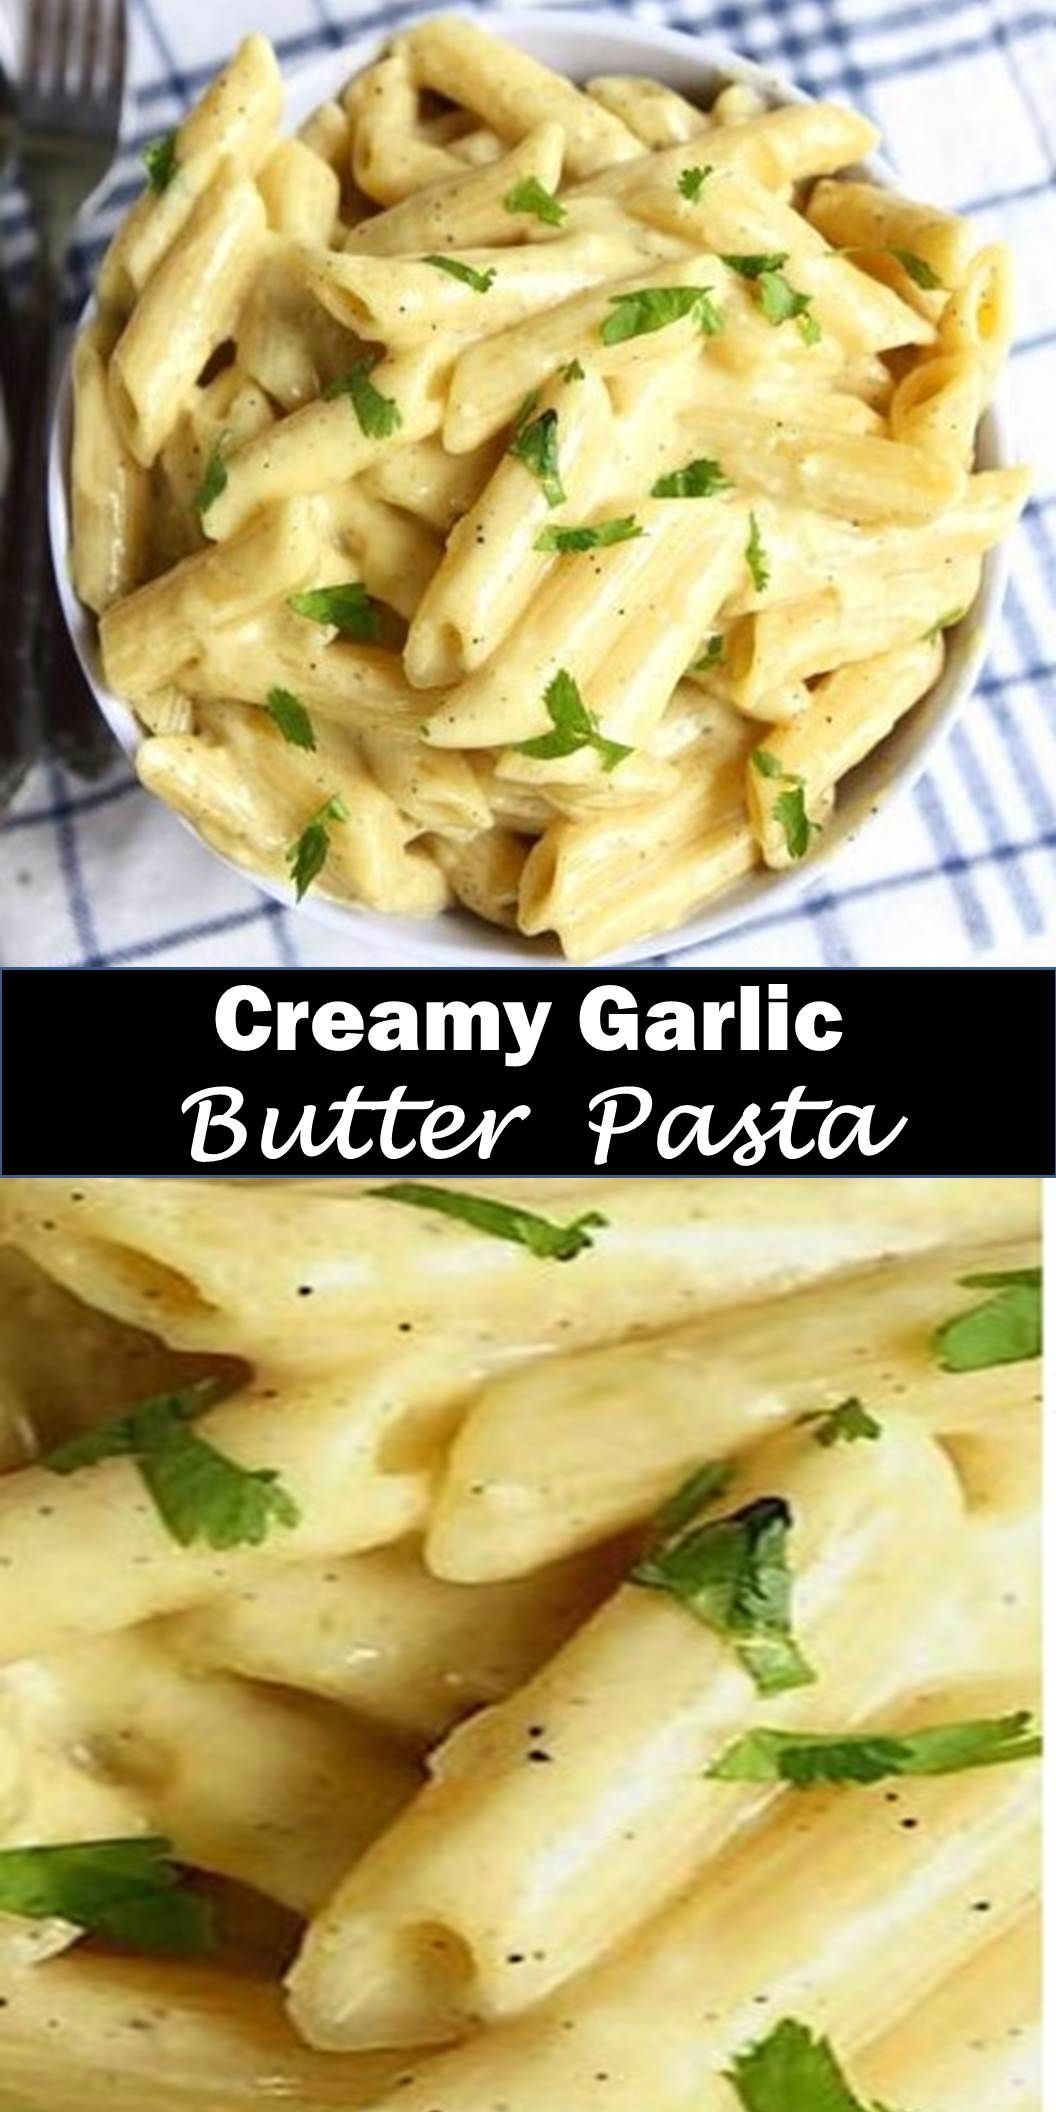 Best Dinner Creamy Garlic Butter Pasta Delicious And Healthy Family Choice Special Food And Pasta Side Dishes Easy Pasta Recipes Pasta Sauce Recipes Easy